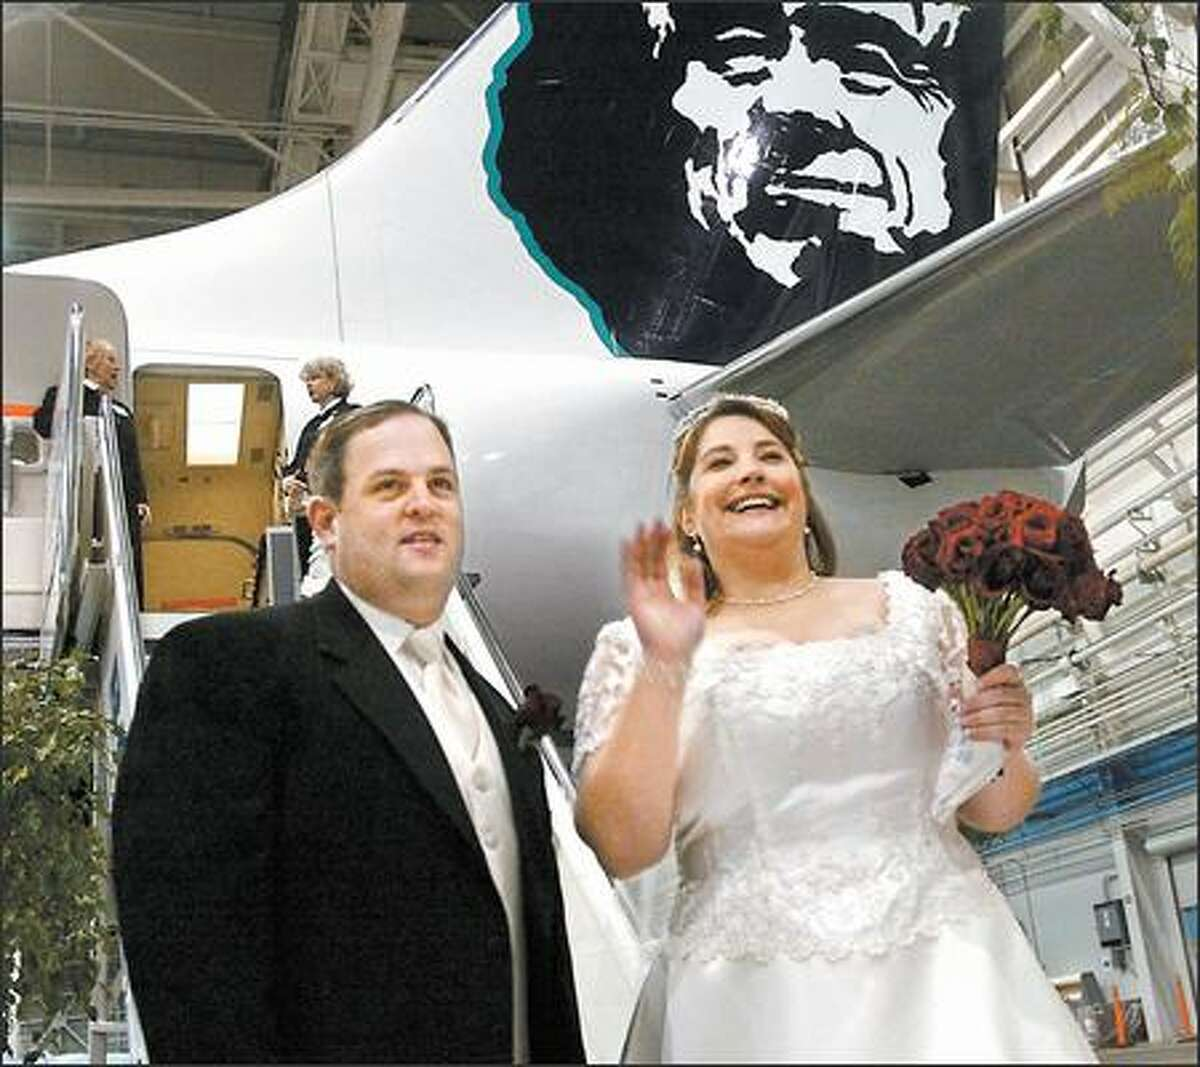 Alaska Airlines celebrated the delivery of its newest airplane, a Boeing 737-800, yesterday with an onboard wedding with employees Frank Raymond and Jennifer Genna. The plane departed from Boeing Field and touched down at Sea-Tac Airport. Raymond and Genna, shown here before boarding the airplane, planned to tie the knot over Mt. Rainier. Captain Mike Swanigan was the ceremony officiant, according to the couple's wedding invitation. The card shows an Alaska Airlines jet flying through a heart made of red balloons.